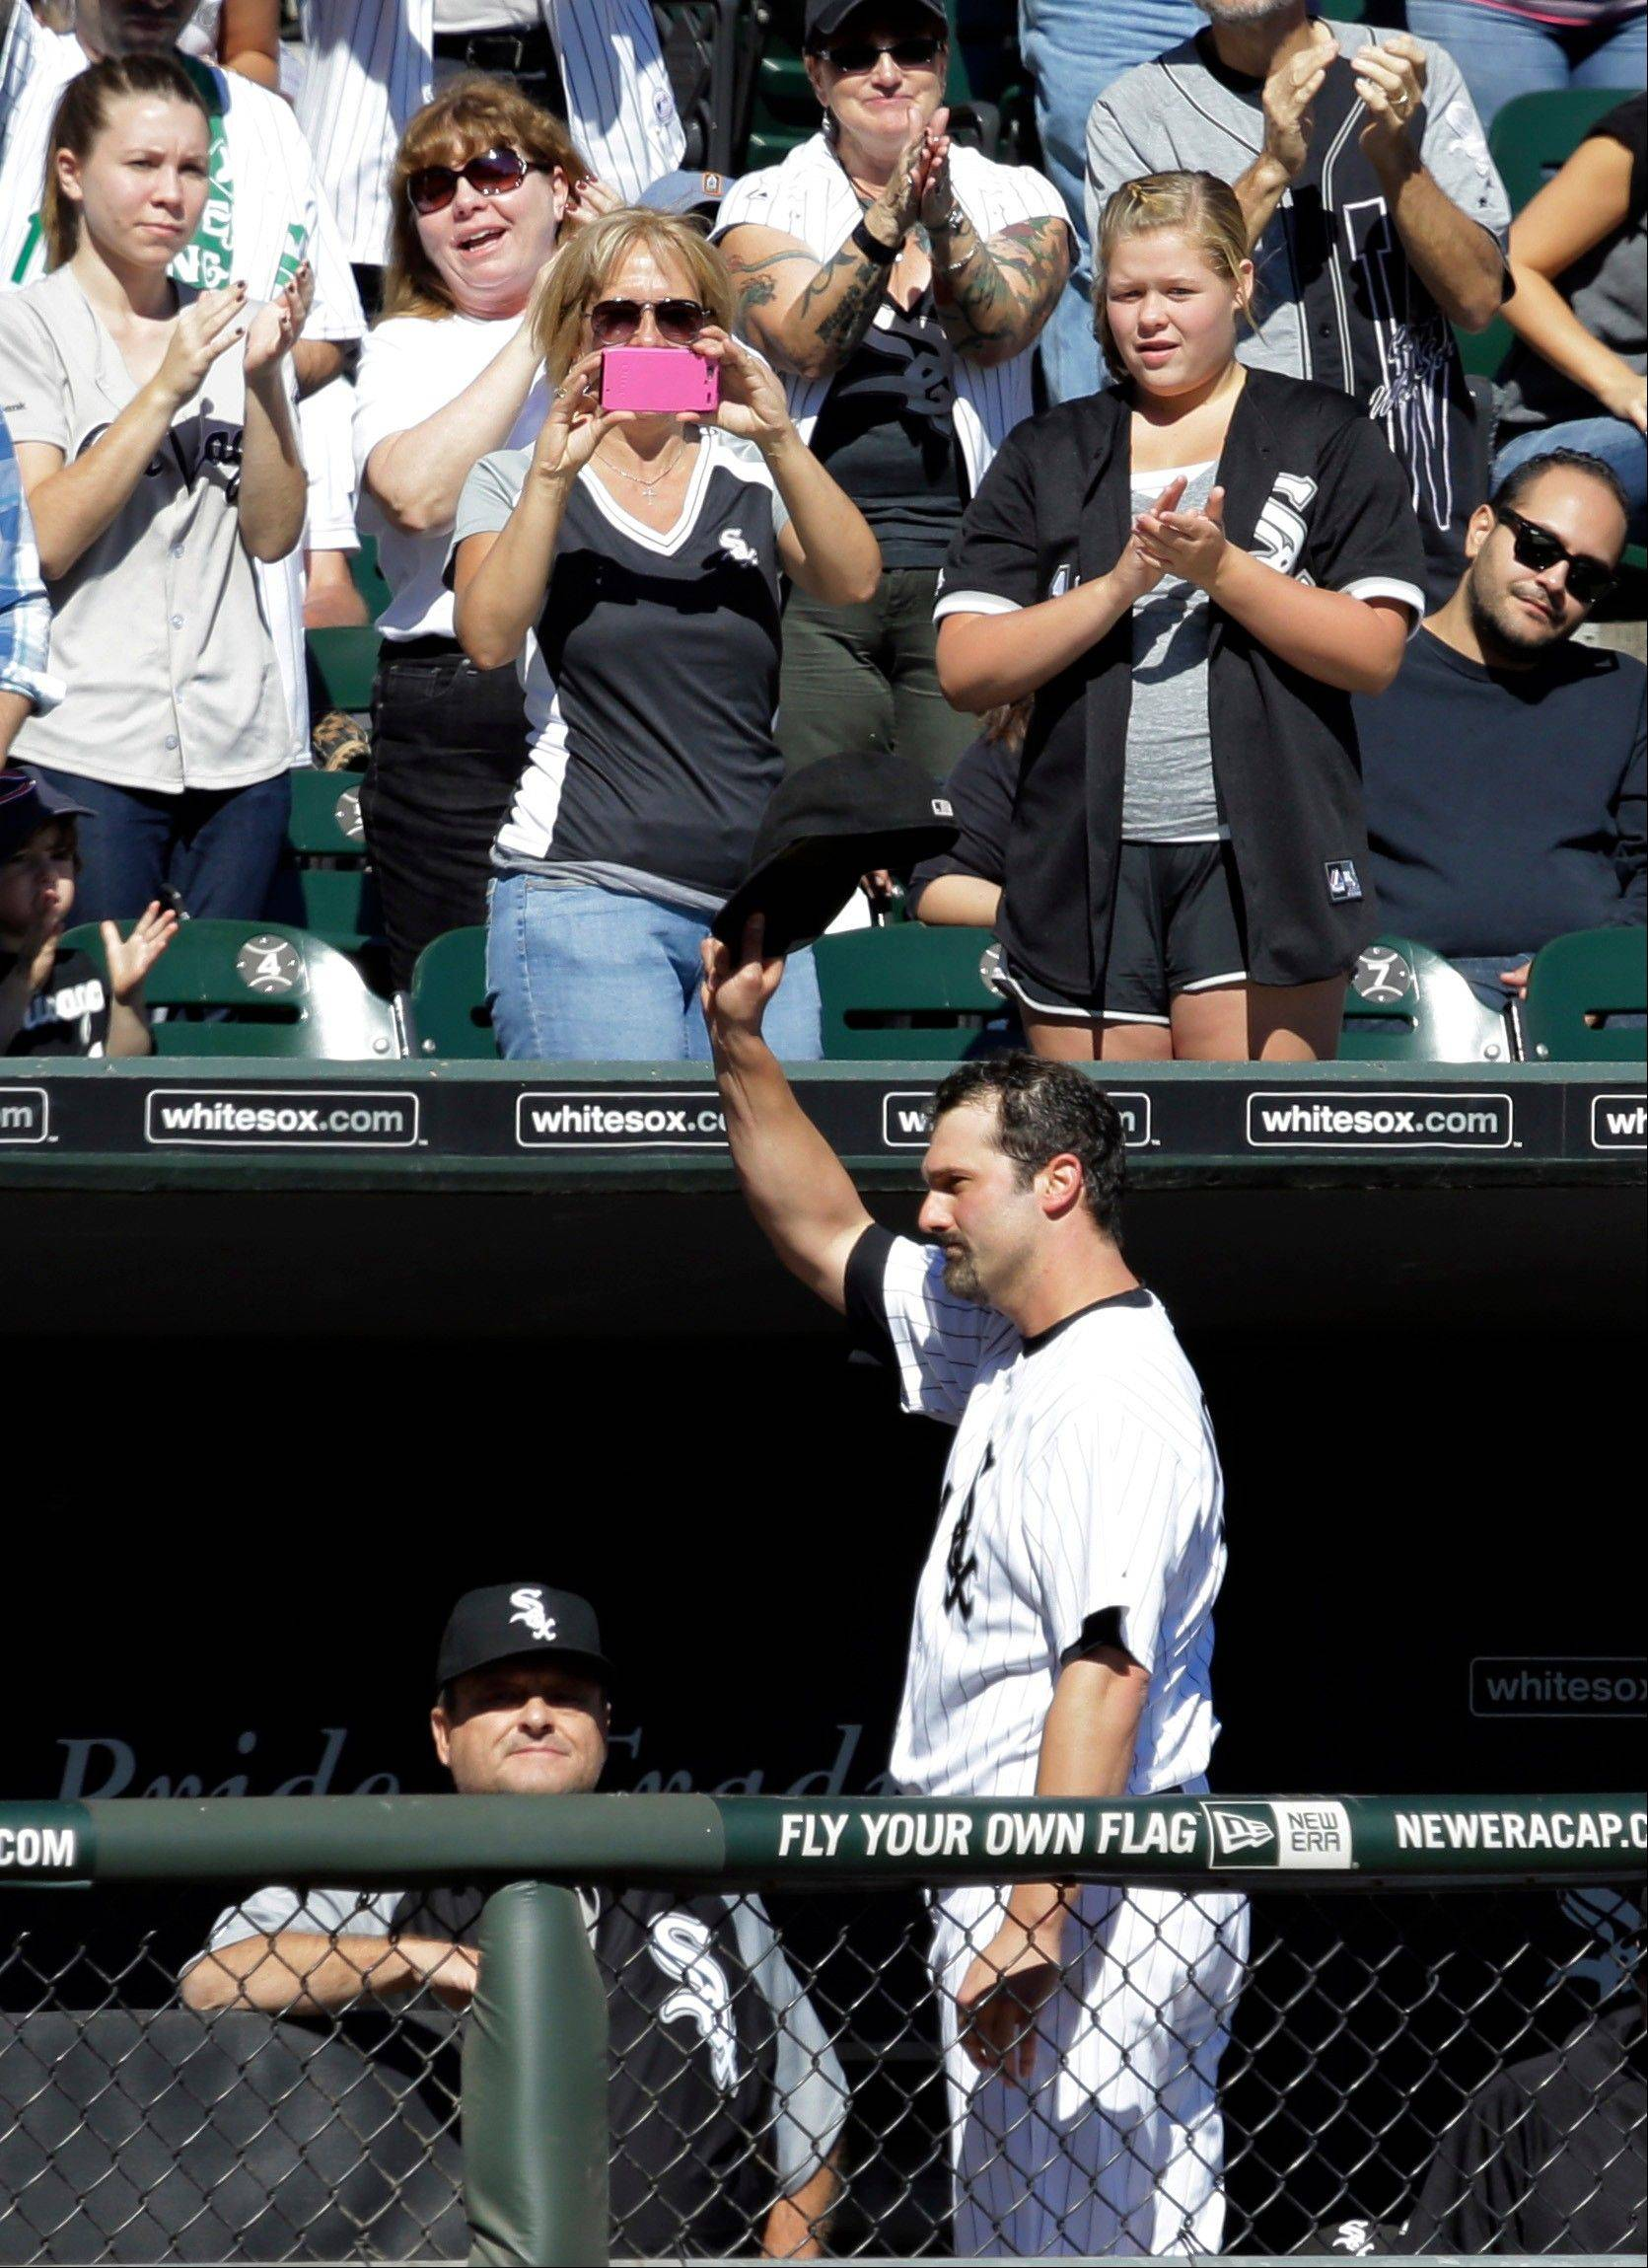 White Sox's Paul Konerko waves to fans after Conor Gillaspie replaced him during the second inning of a baseball game against the Kansas City Royals in Chicago, Sunday, Sept. 29, 2013.